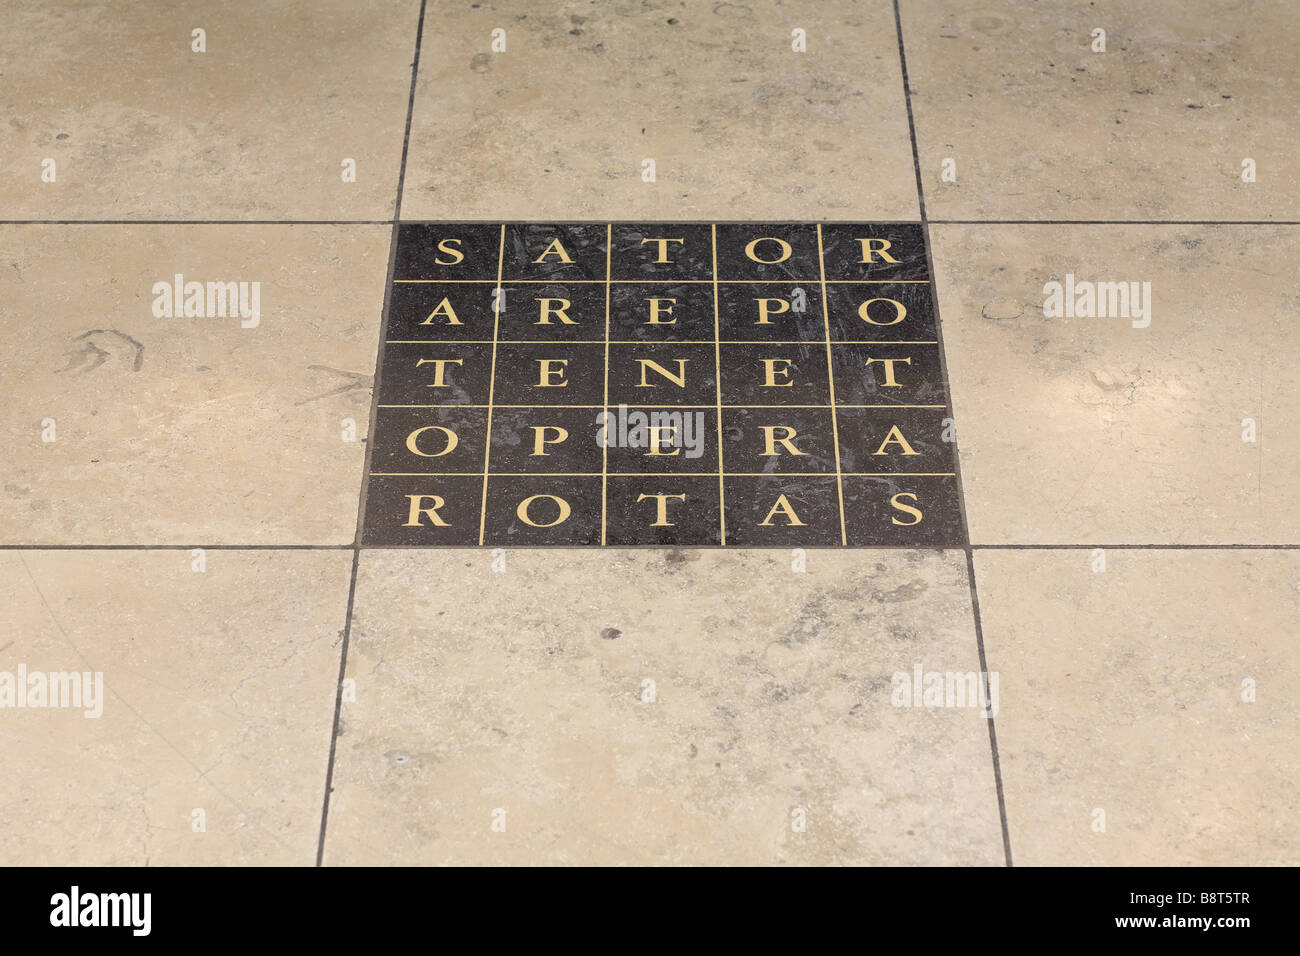 a marble floor tile with a latin palindrome featuring the